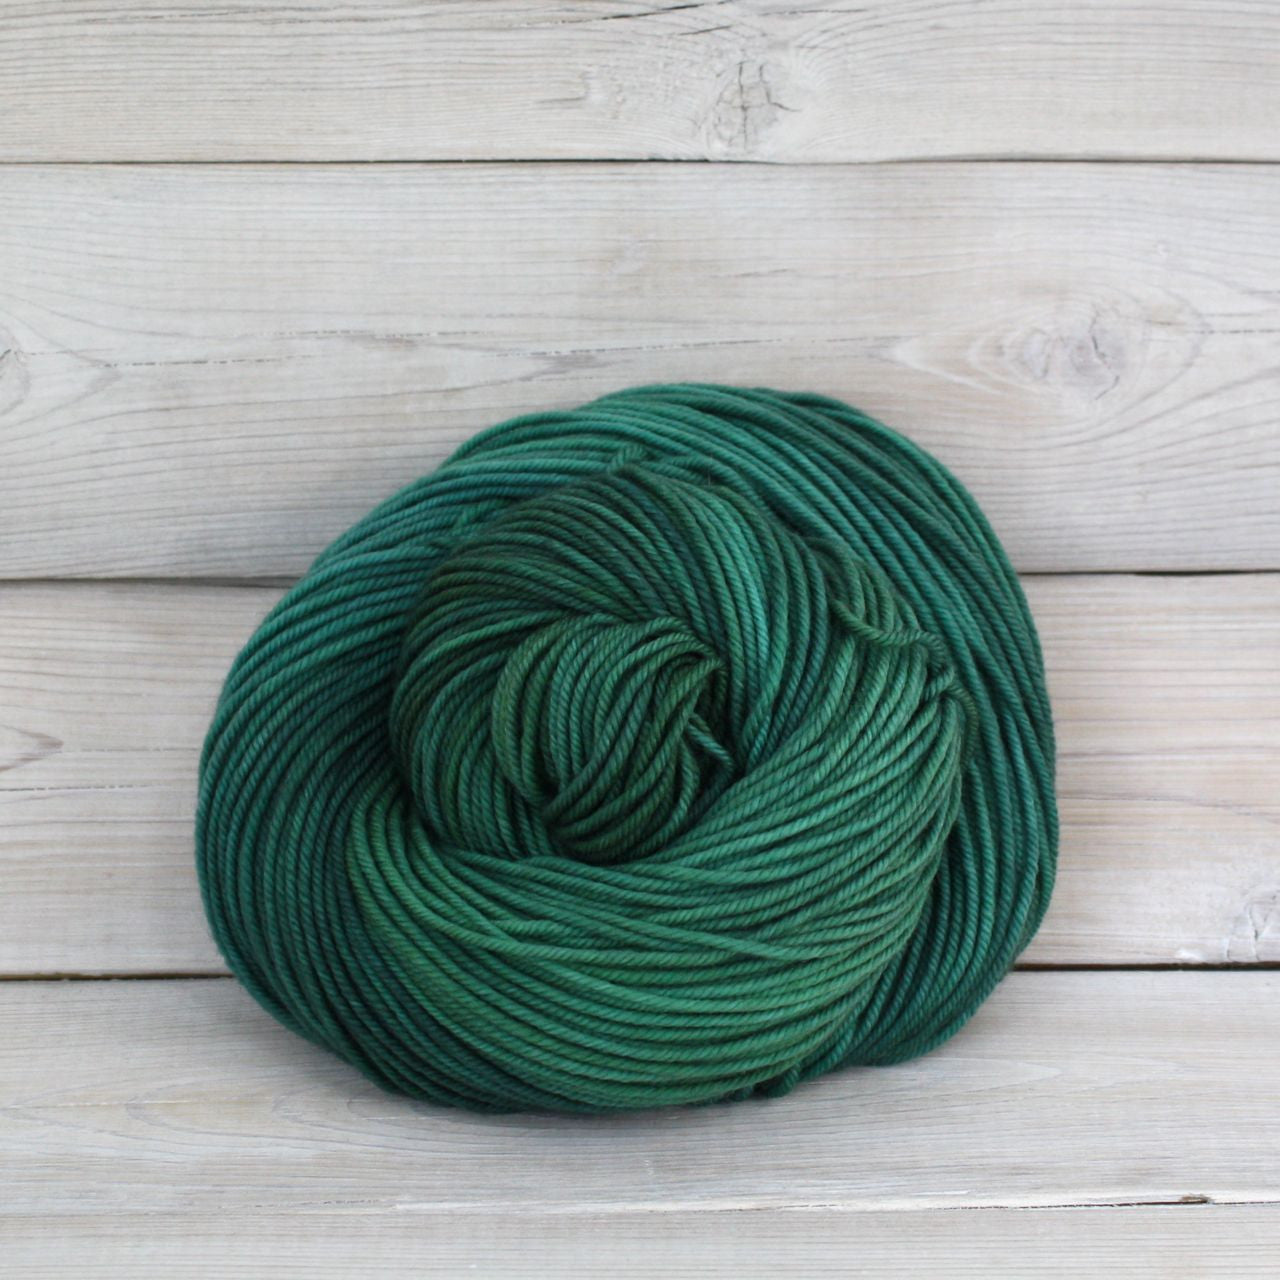 Calypso Yarn | Colorway: Viridian